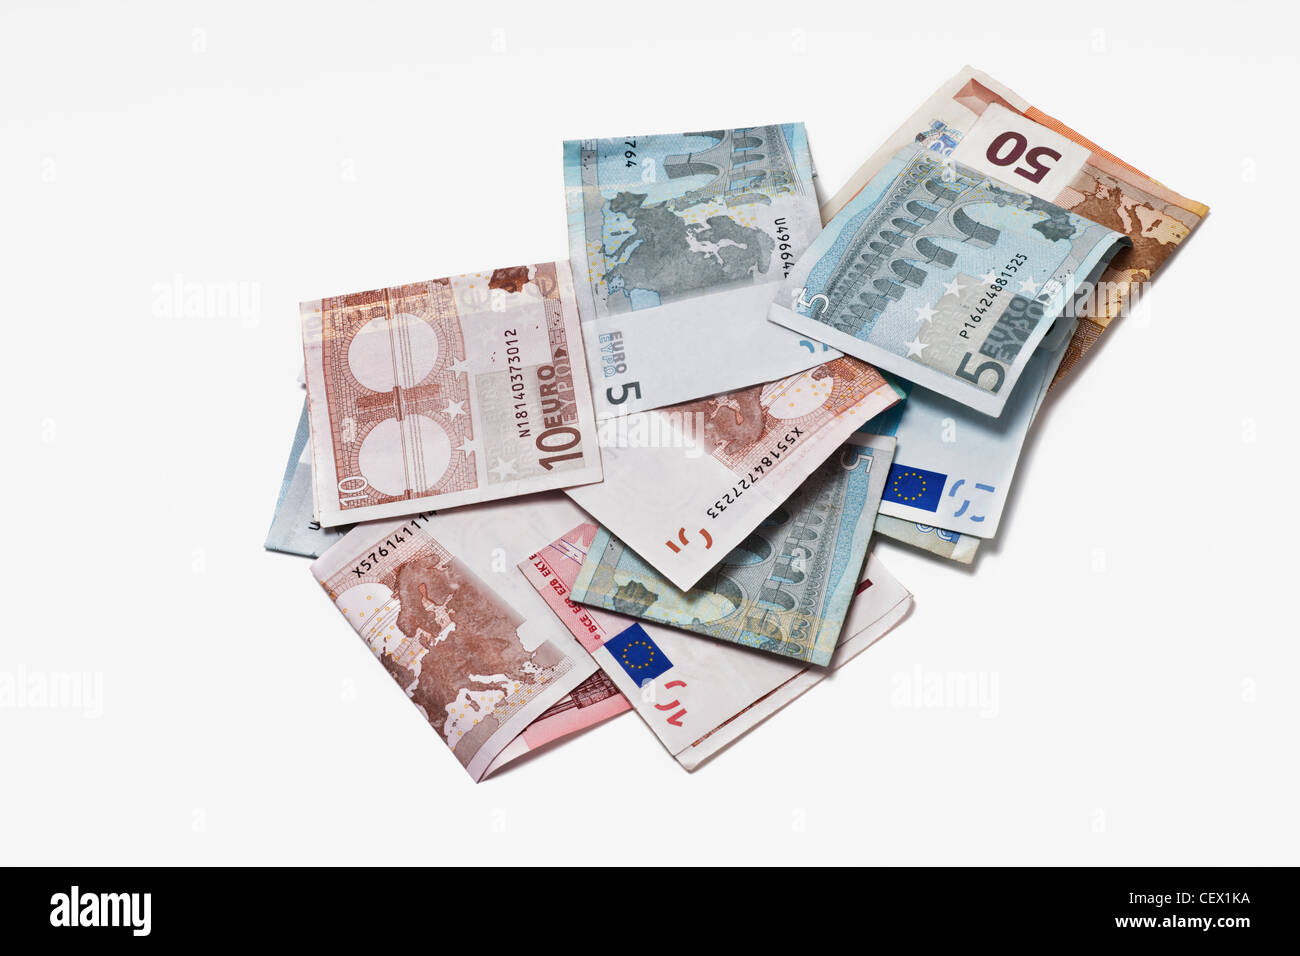 Many Euro bills lying side by side. On January 01st 2002 the Euro was introduced as cash. - Stock Image